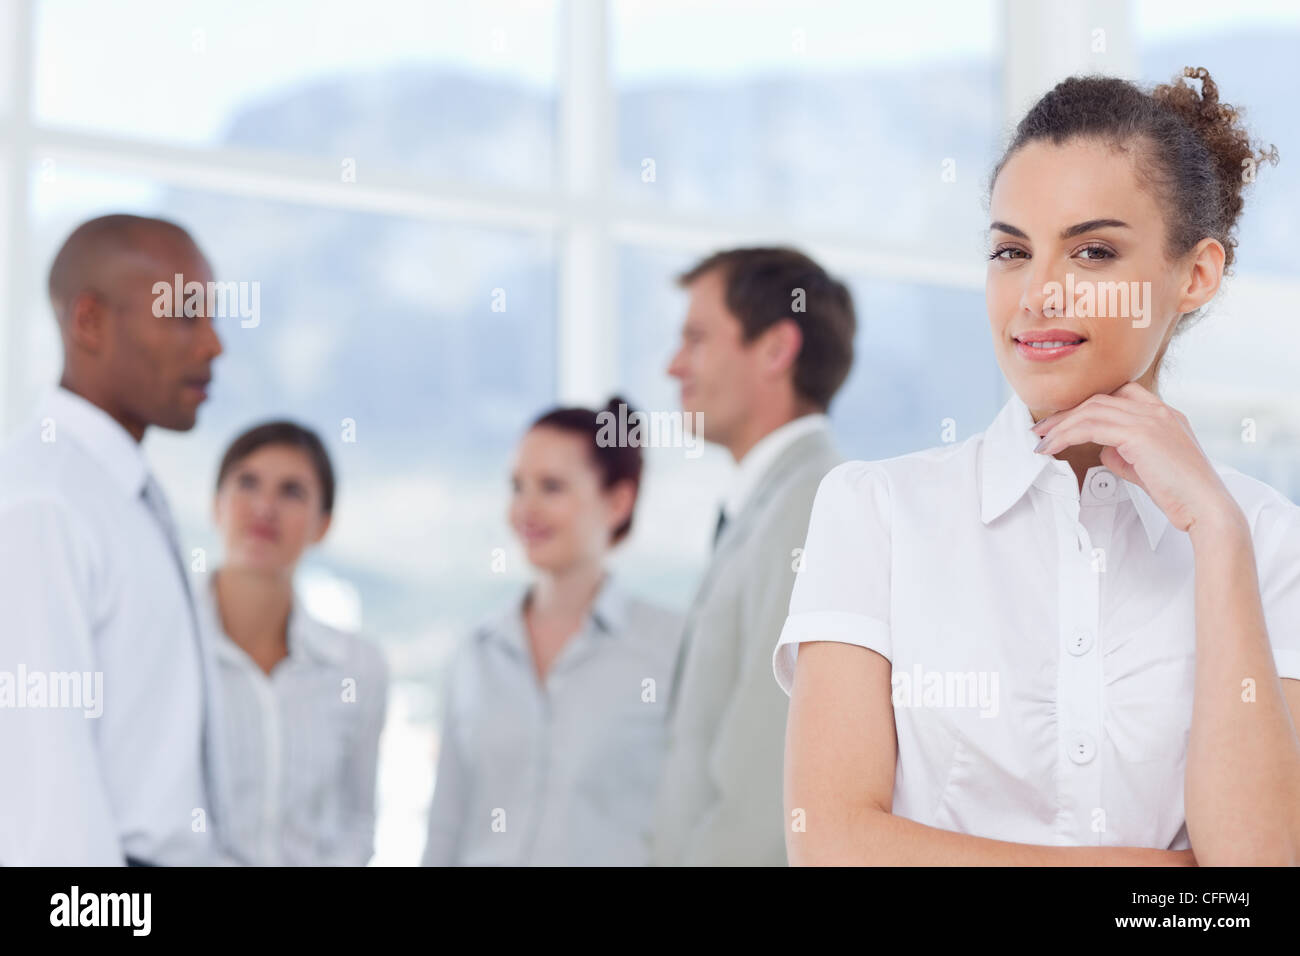 Tradeswoman in thinkers pose with colleagues behind her - Stock Image